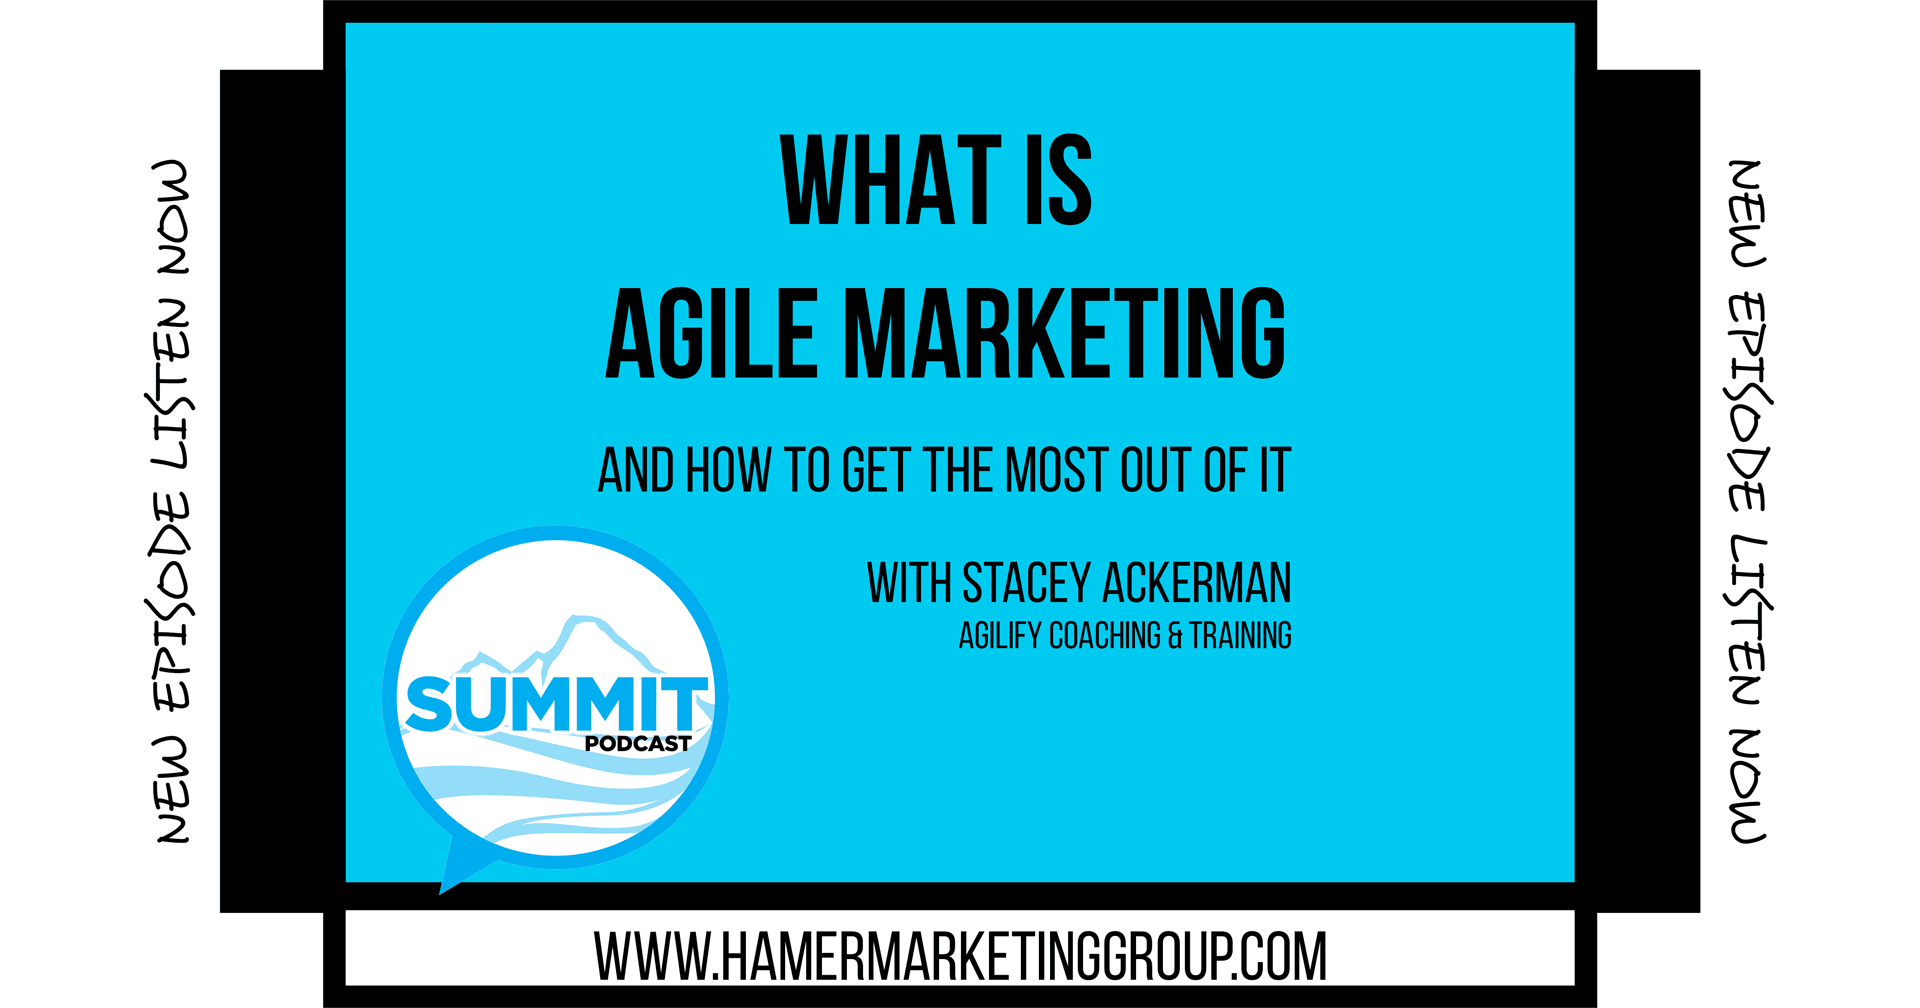 Summit Podcast - Agile Marketing with Stacey Ackerman